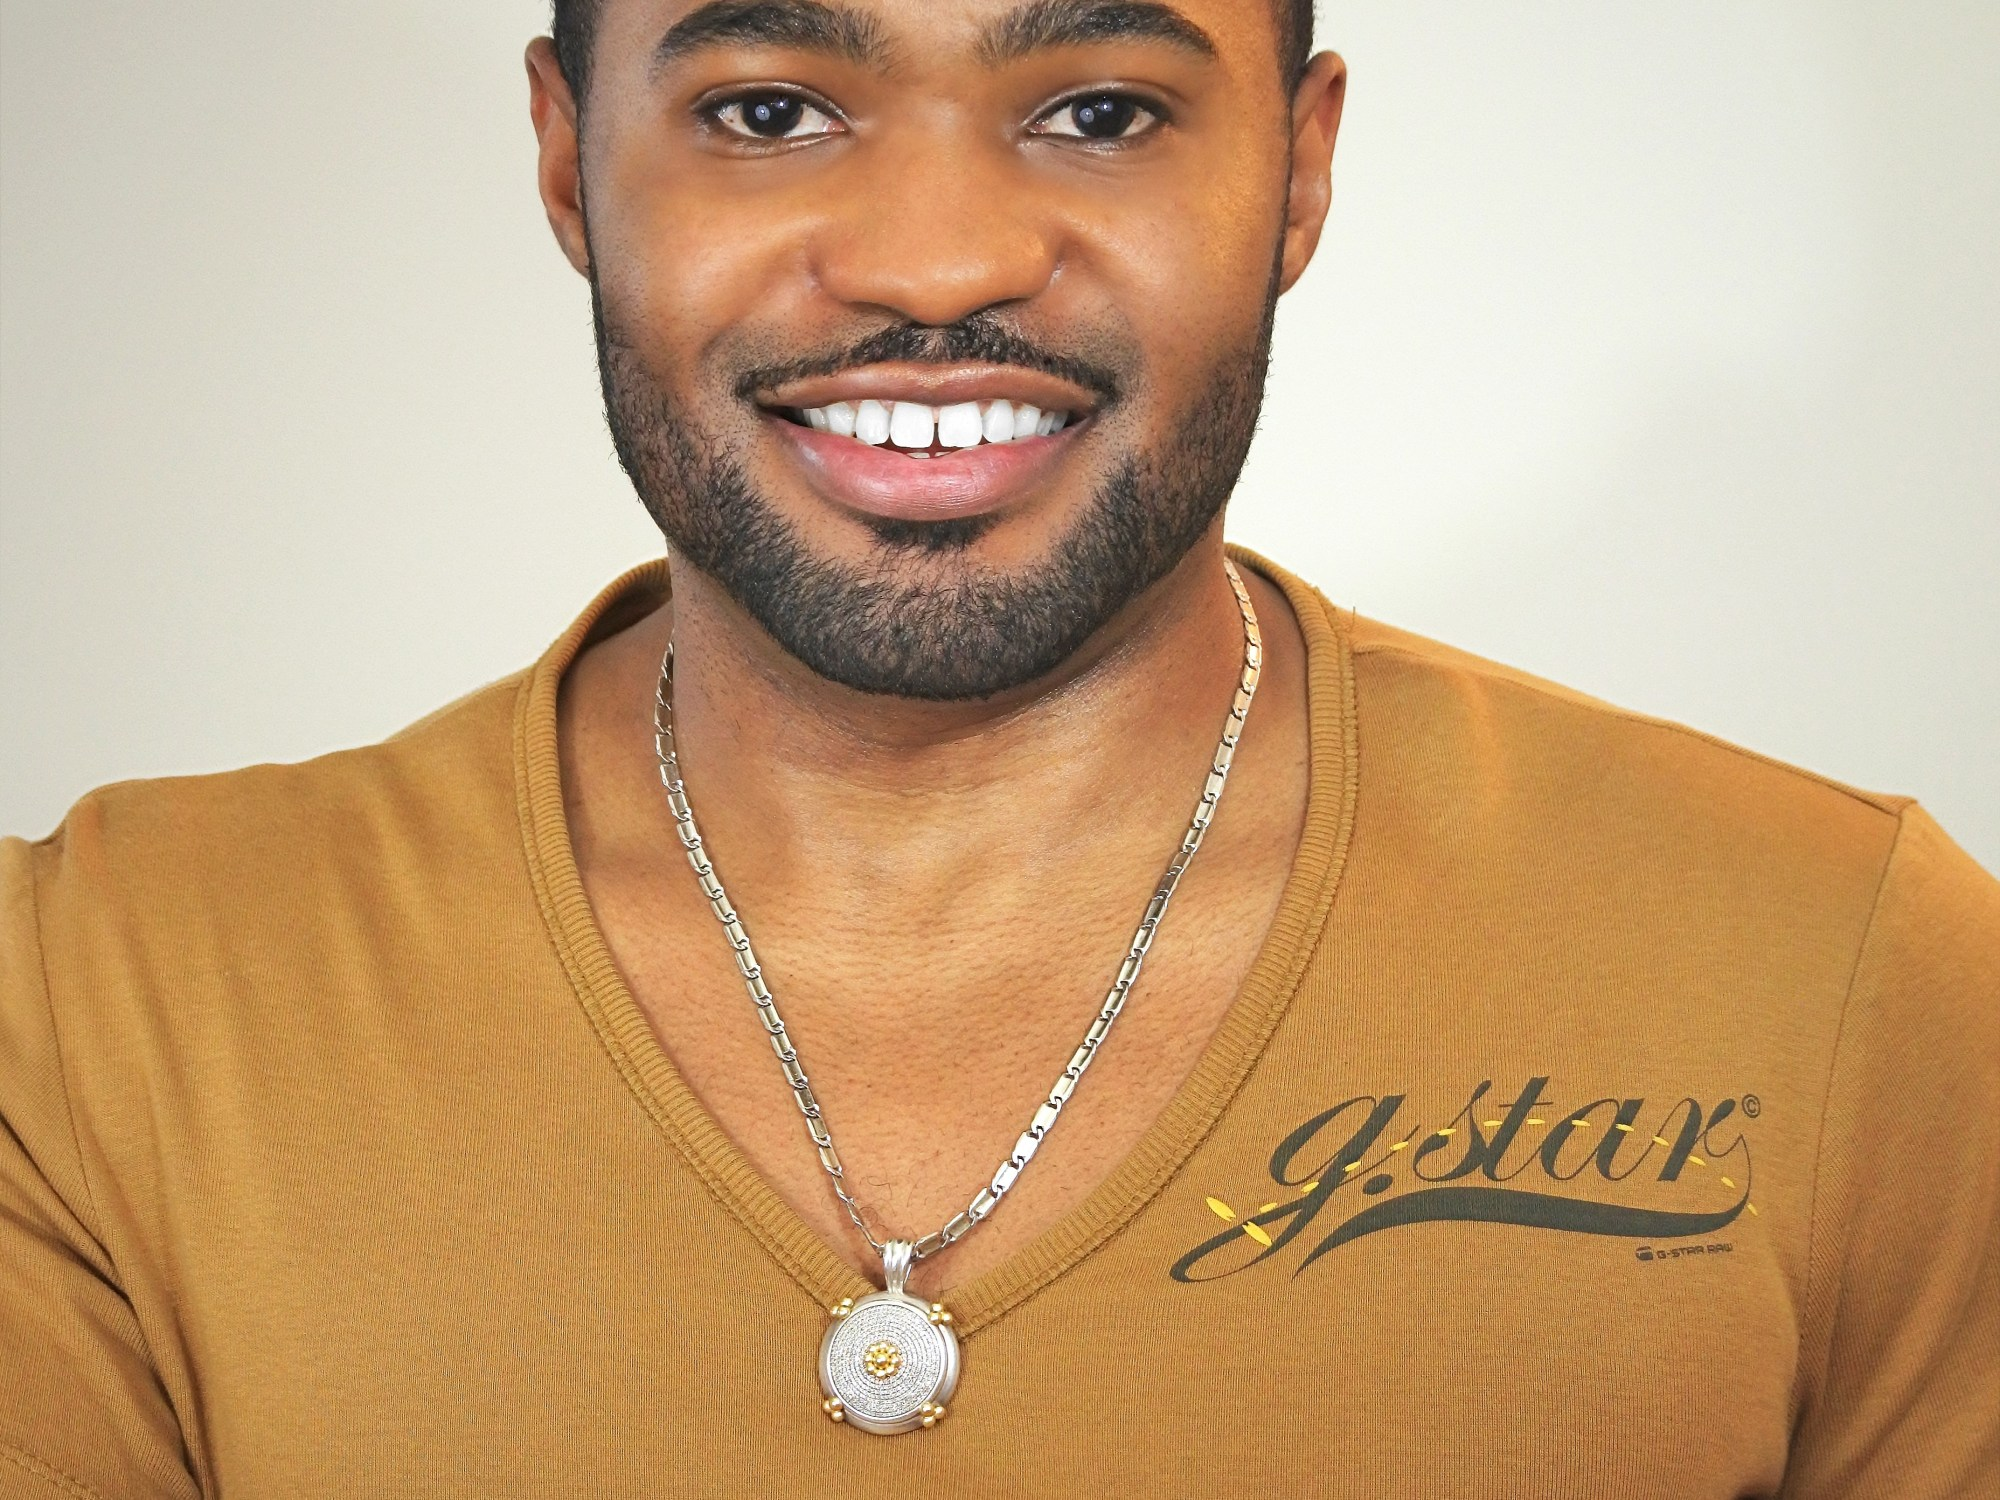 Golden g-star raw shirt worn by celebrity musician, producer, and influencer Tyrone Smith